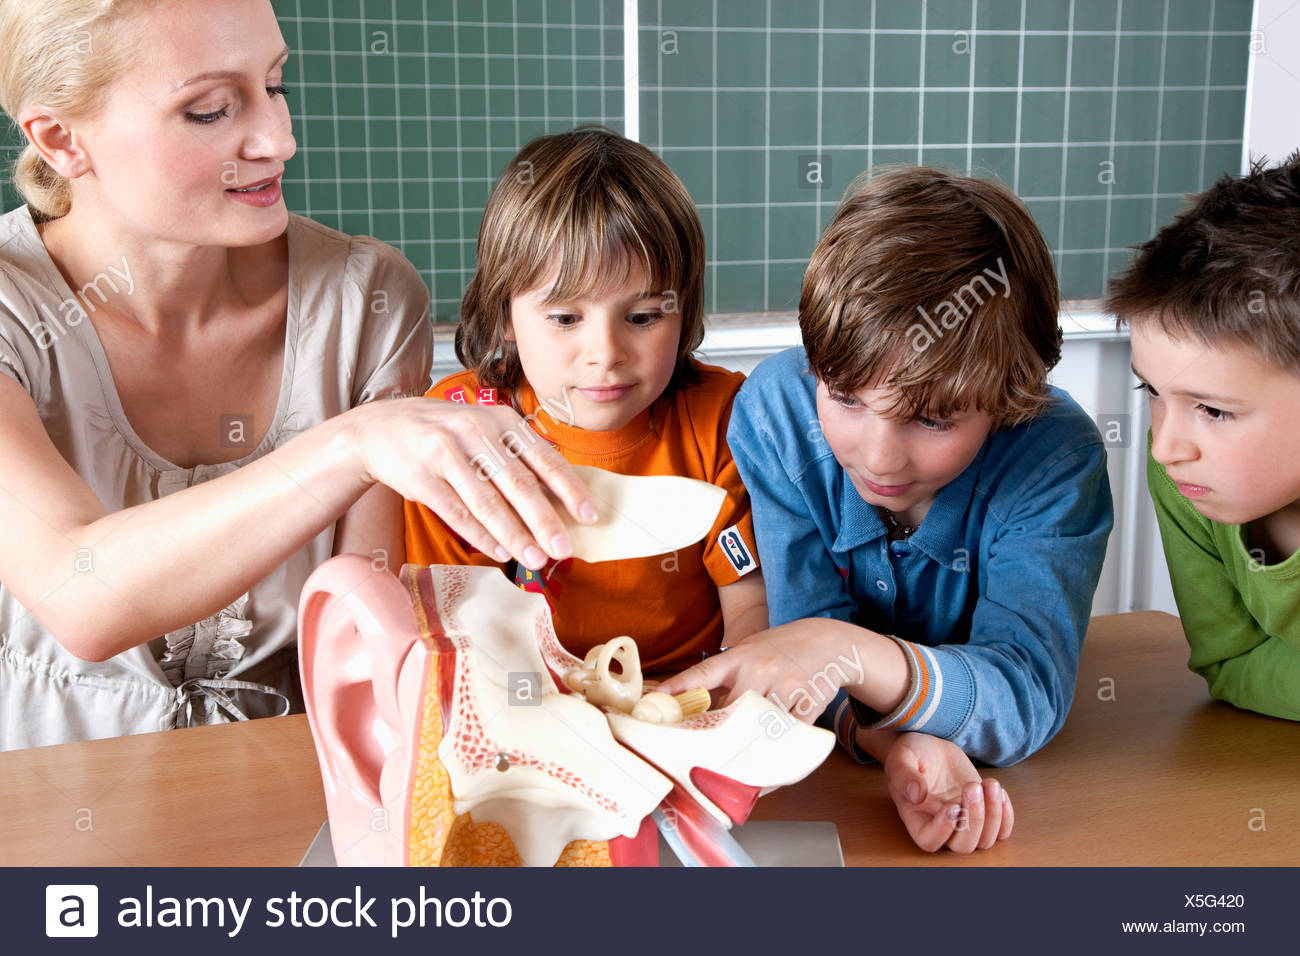 teacher demonstrating model of human body to three pupils - Stock Image